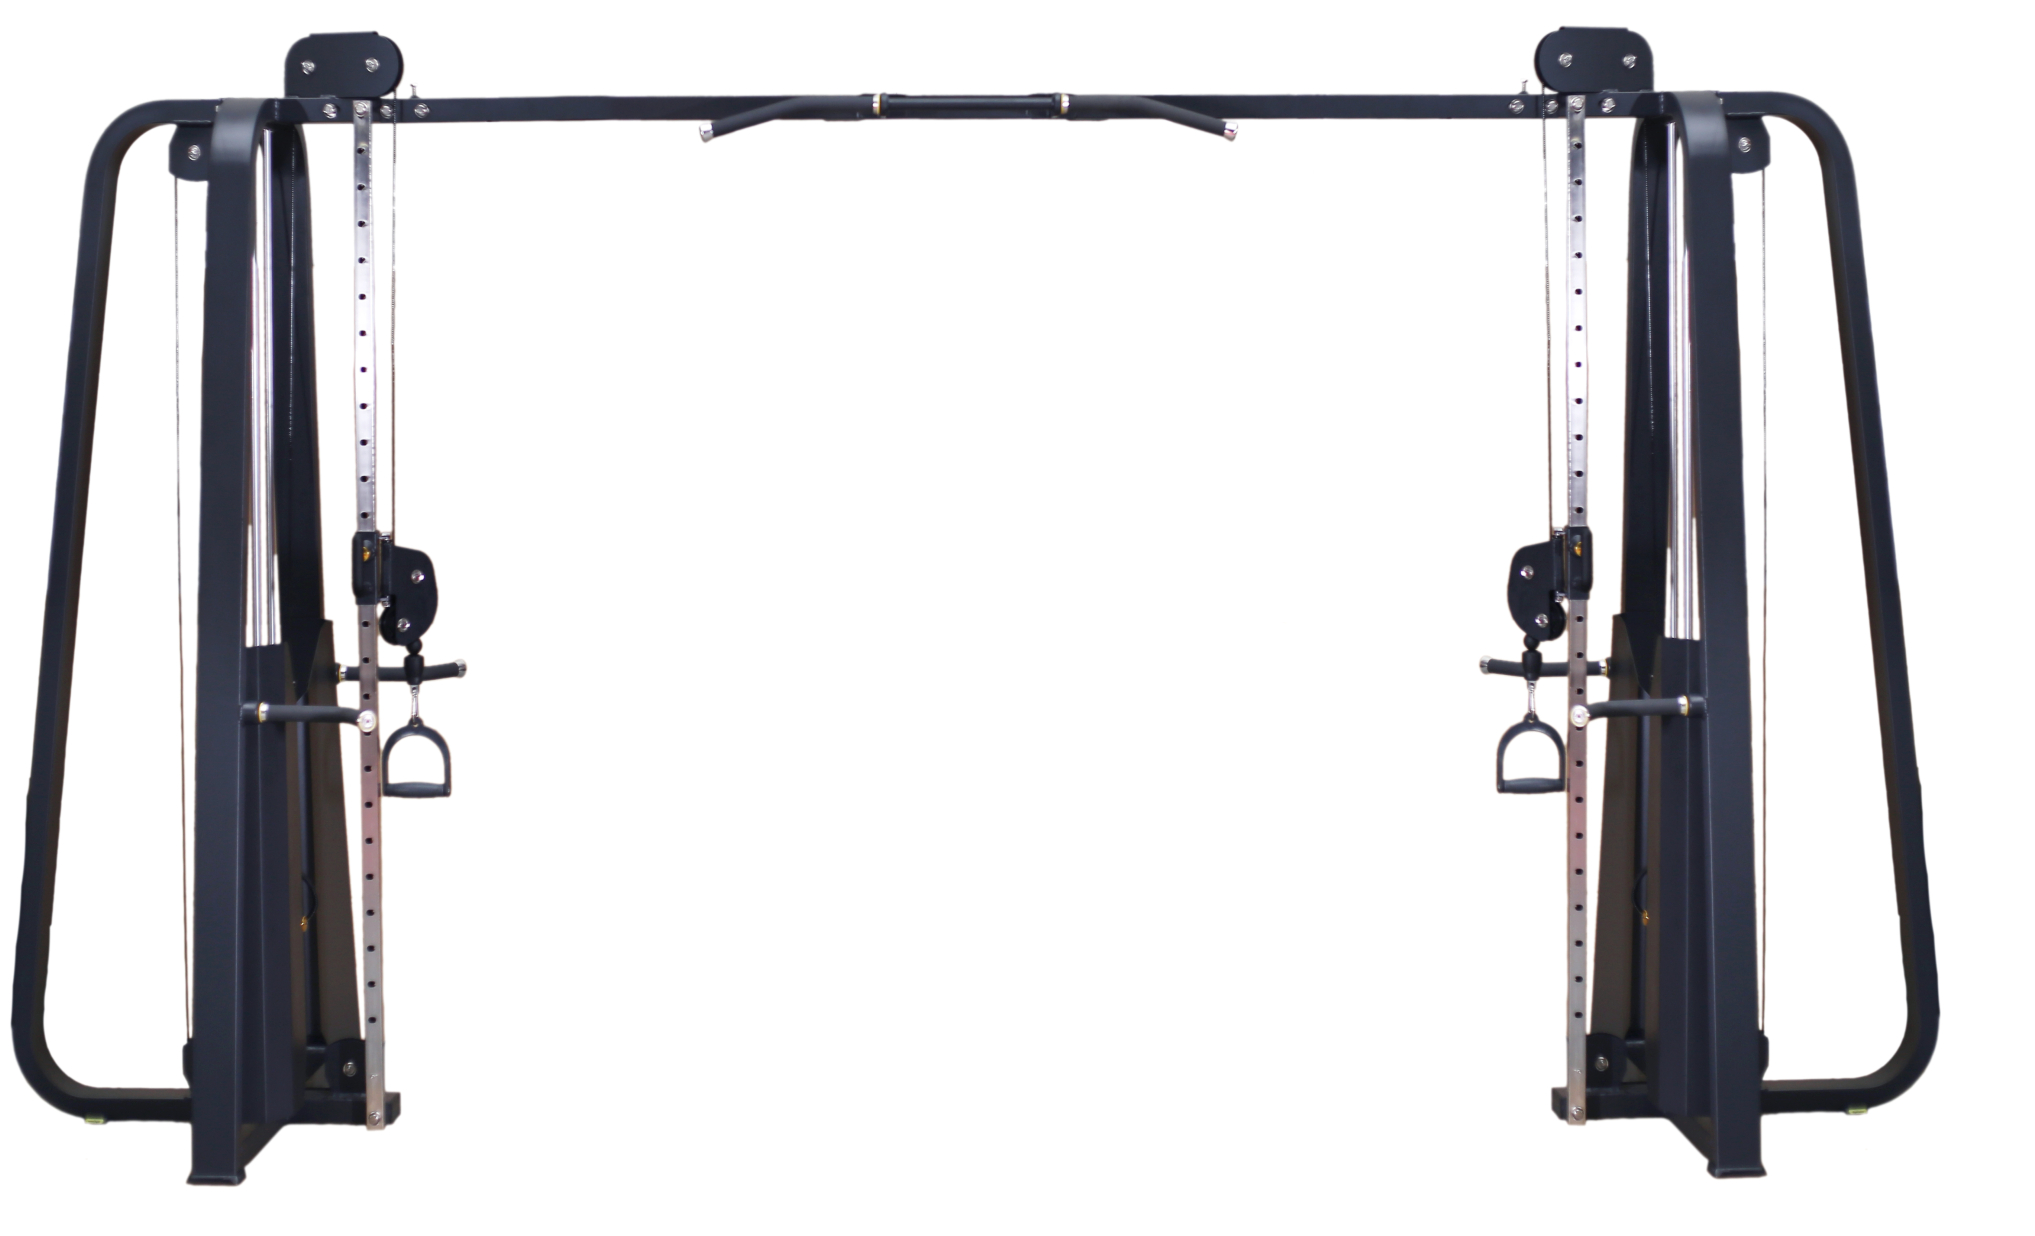 DFT-616 Adjustable Cable Crossover